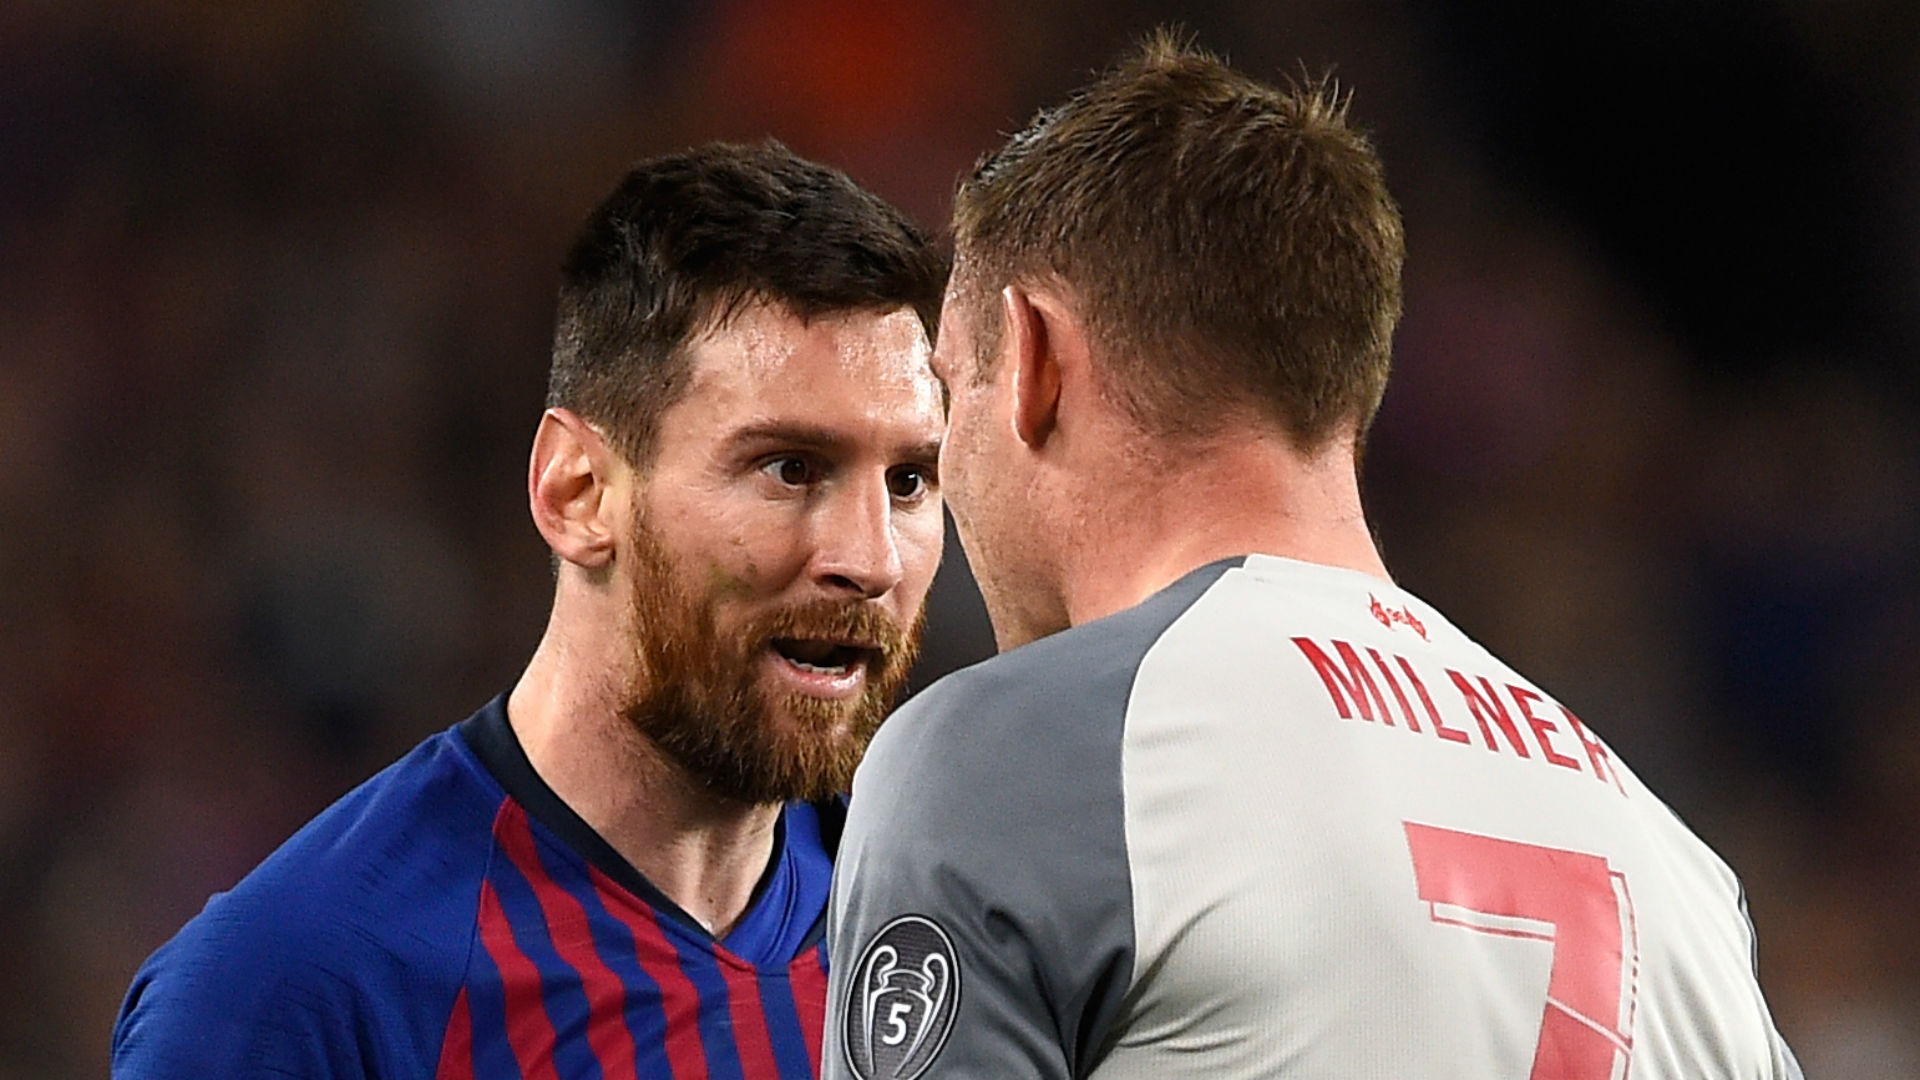 'Messi was calling me a donkey' - Milner says Barca star was incensed by late tackle